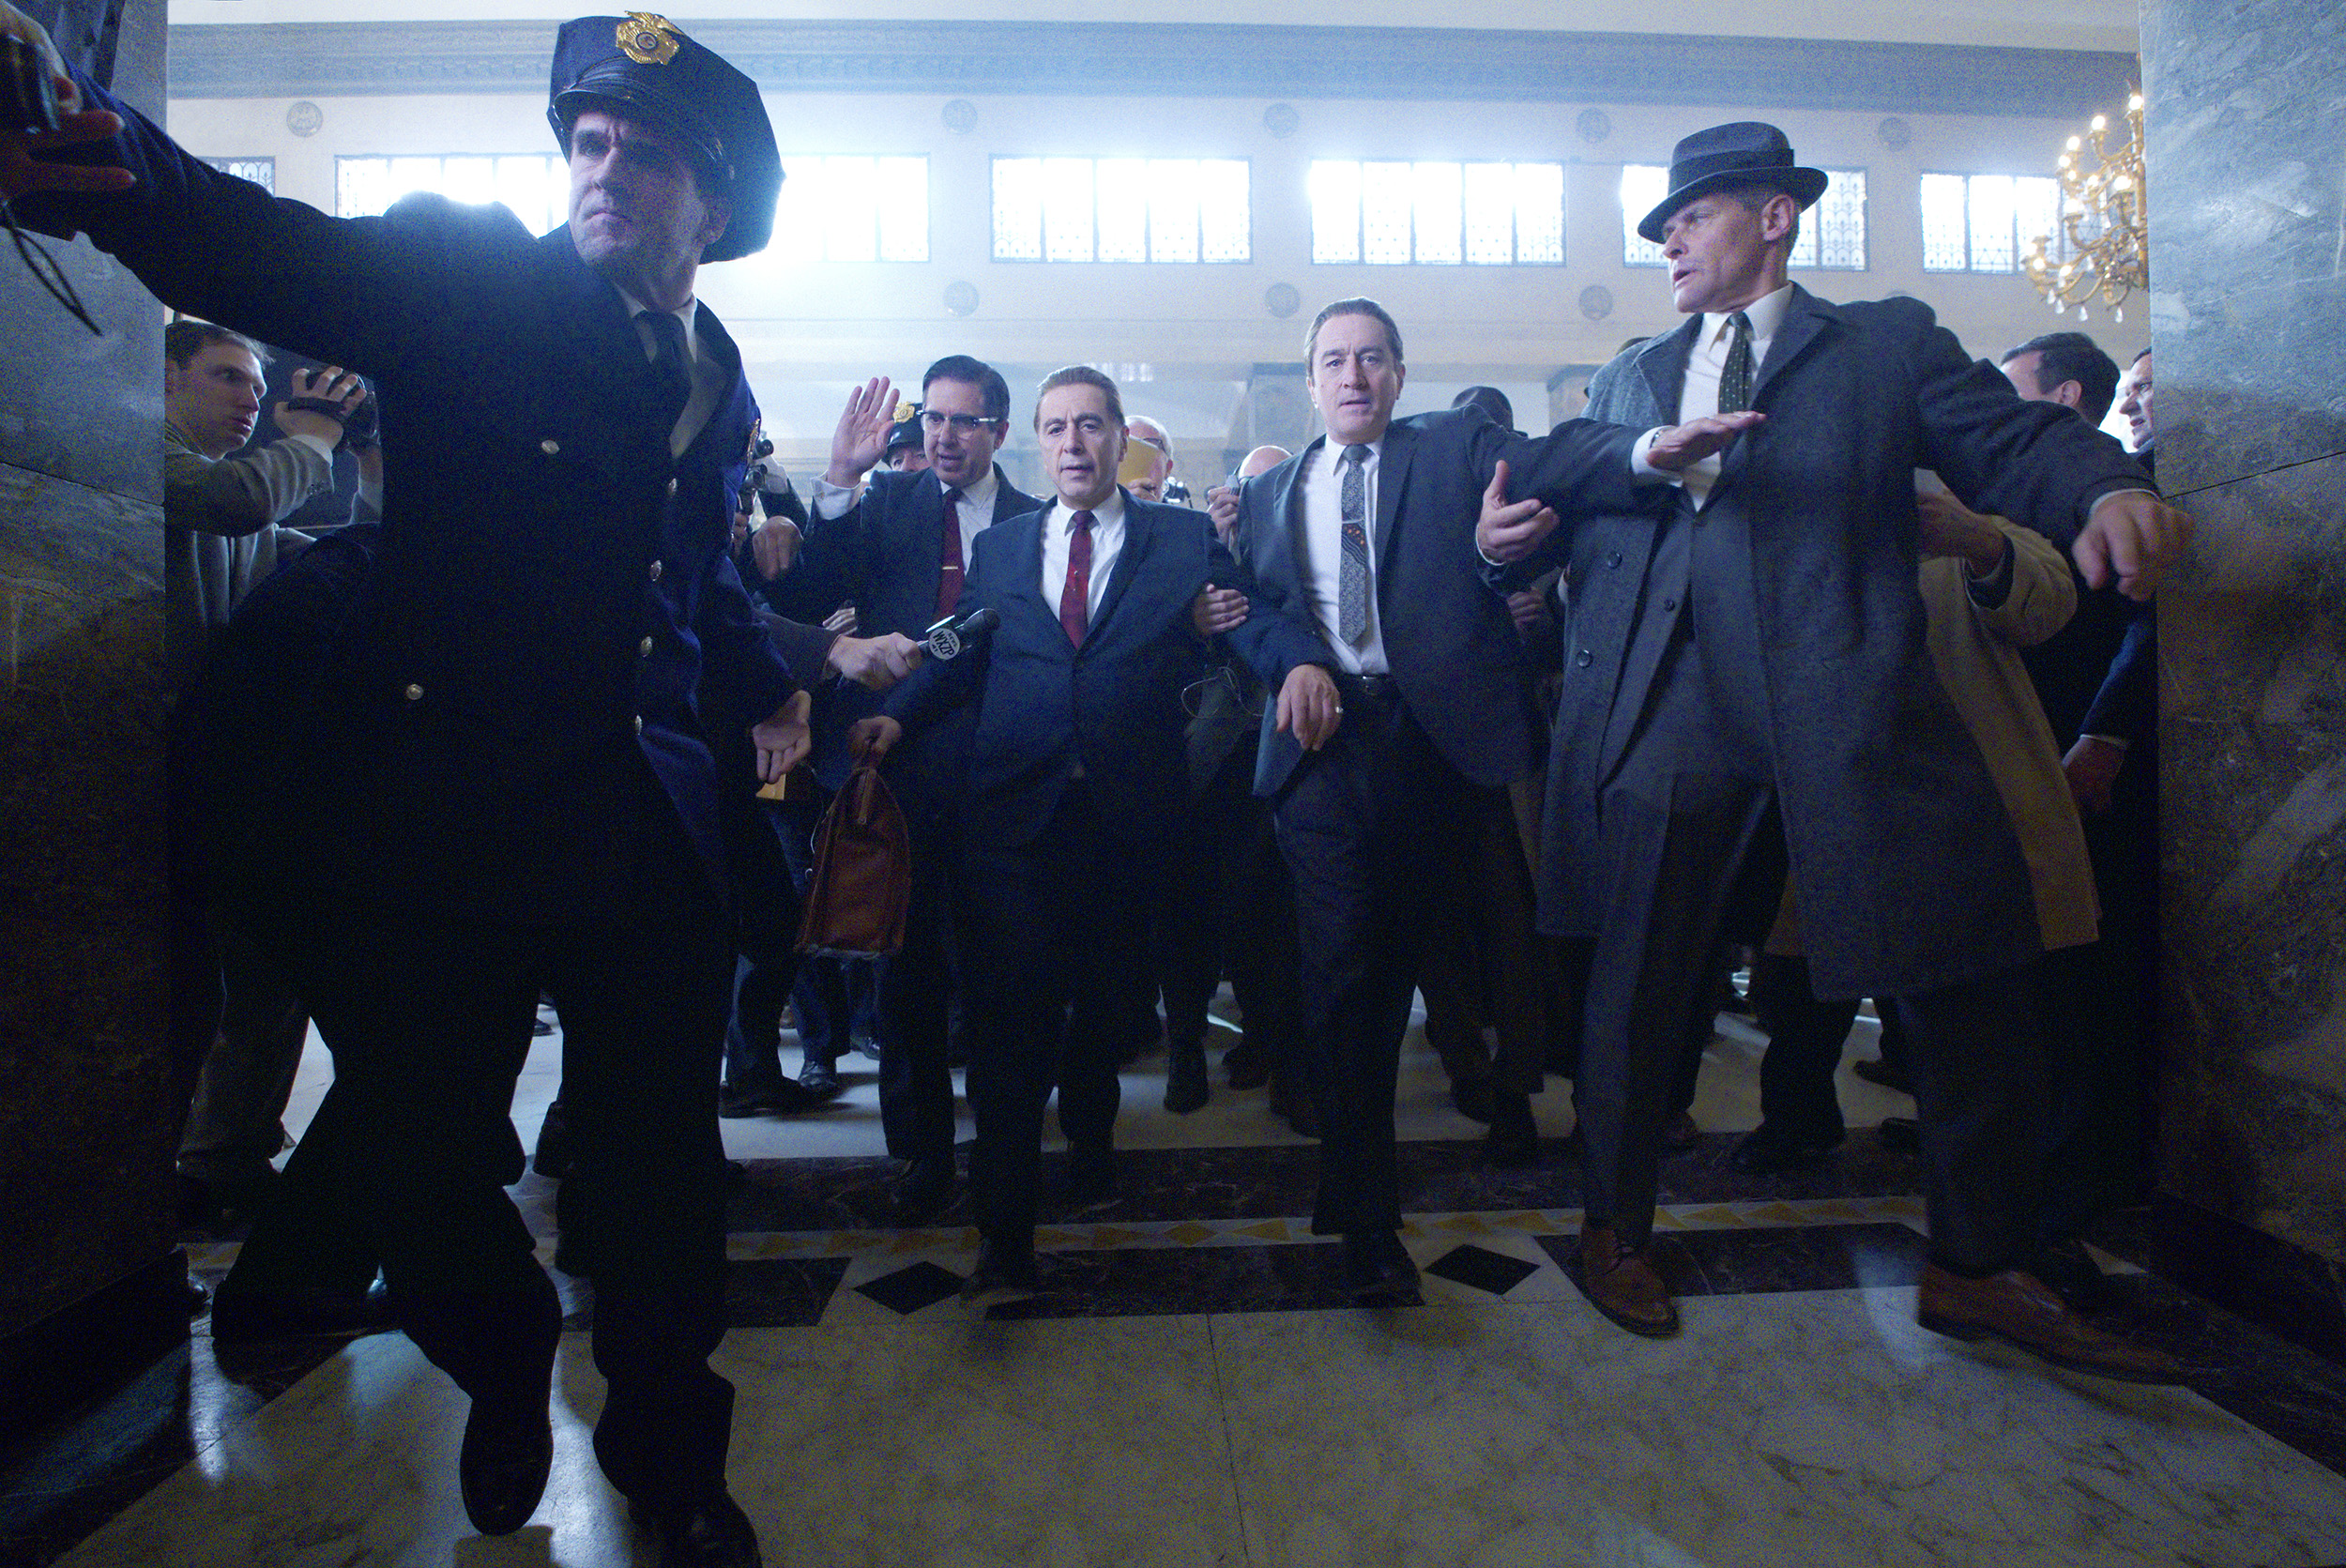 RomaFF14: The Irishman, l'epopea criminale di Scorsese